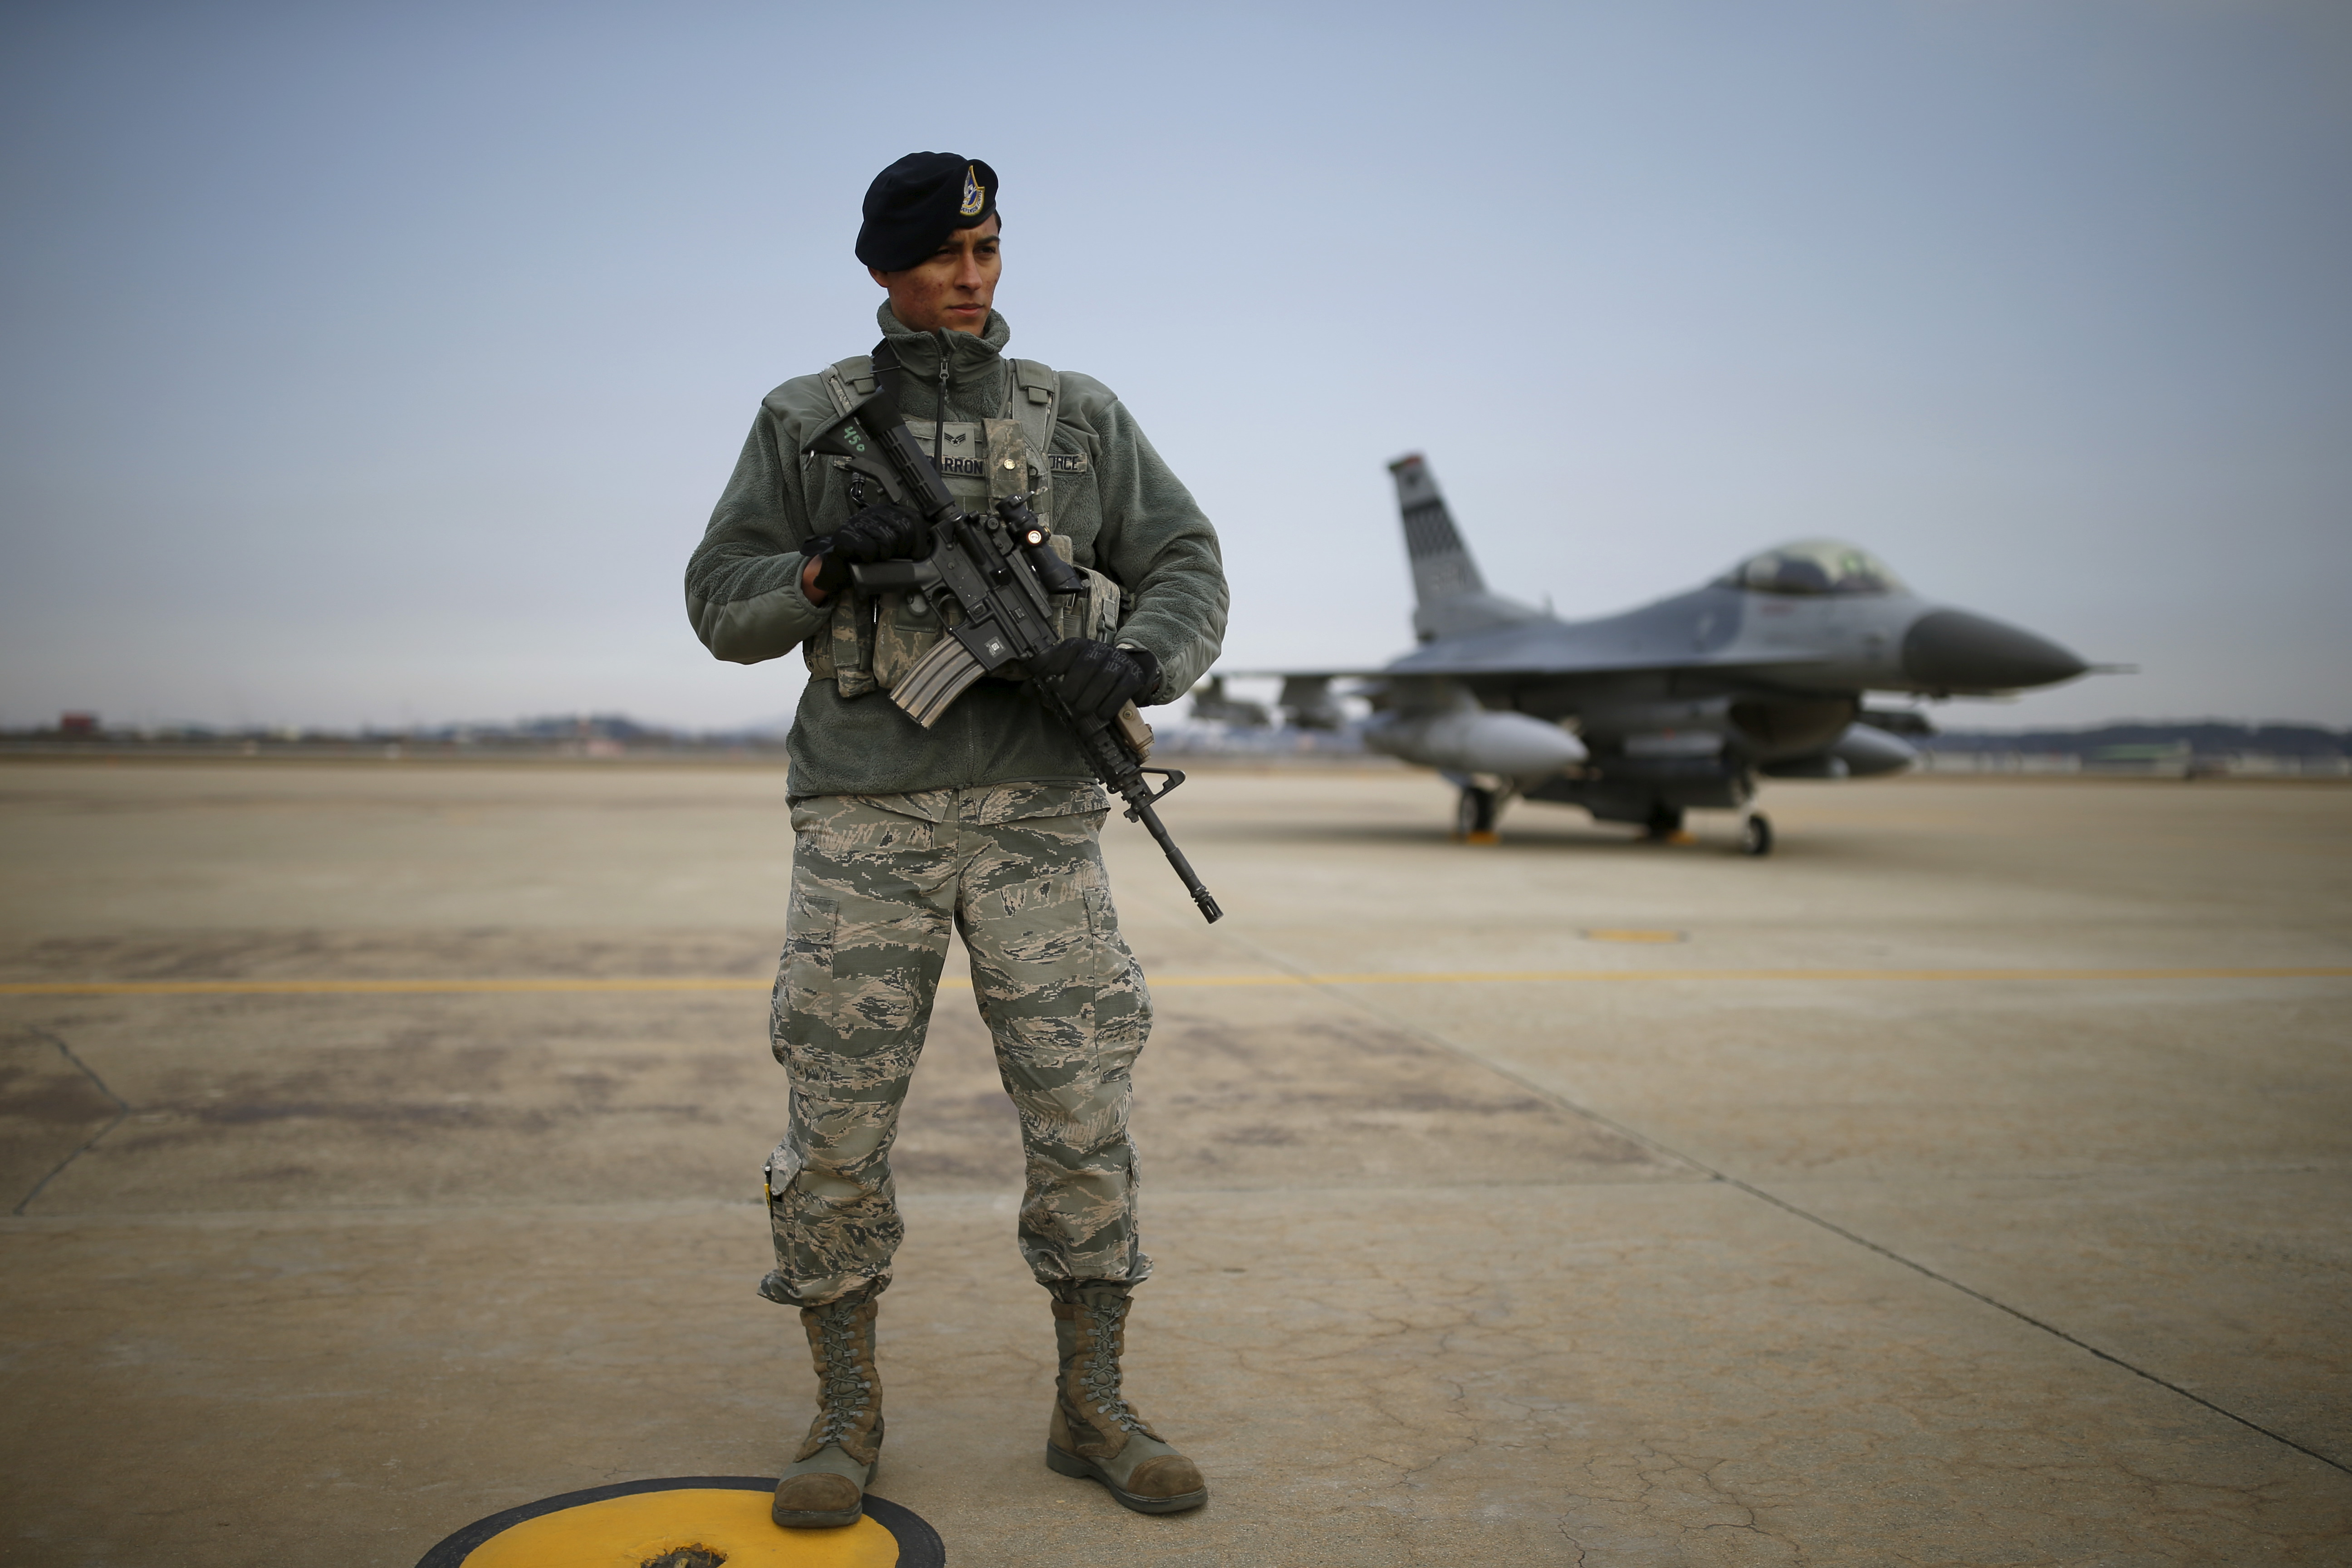 A U.S. soldier stands guard in front of their Air F-16 fighter jet at Osan Air Base in Pyeongtaek